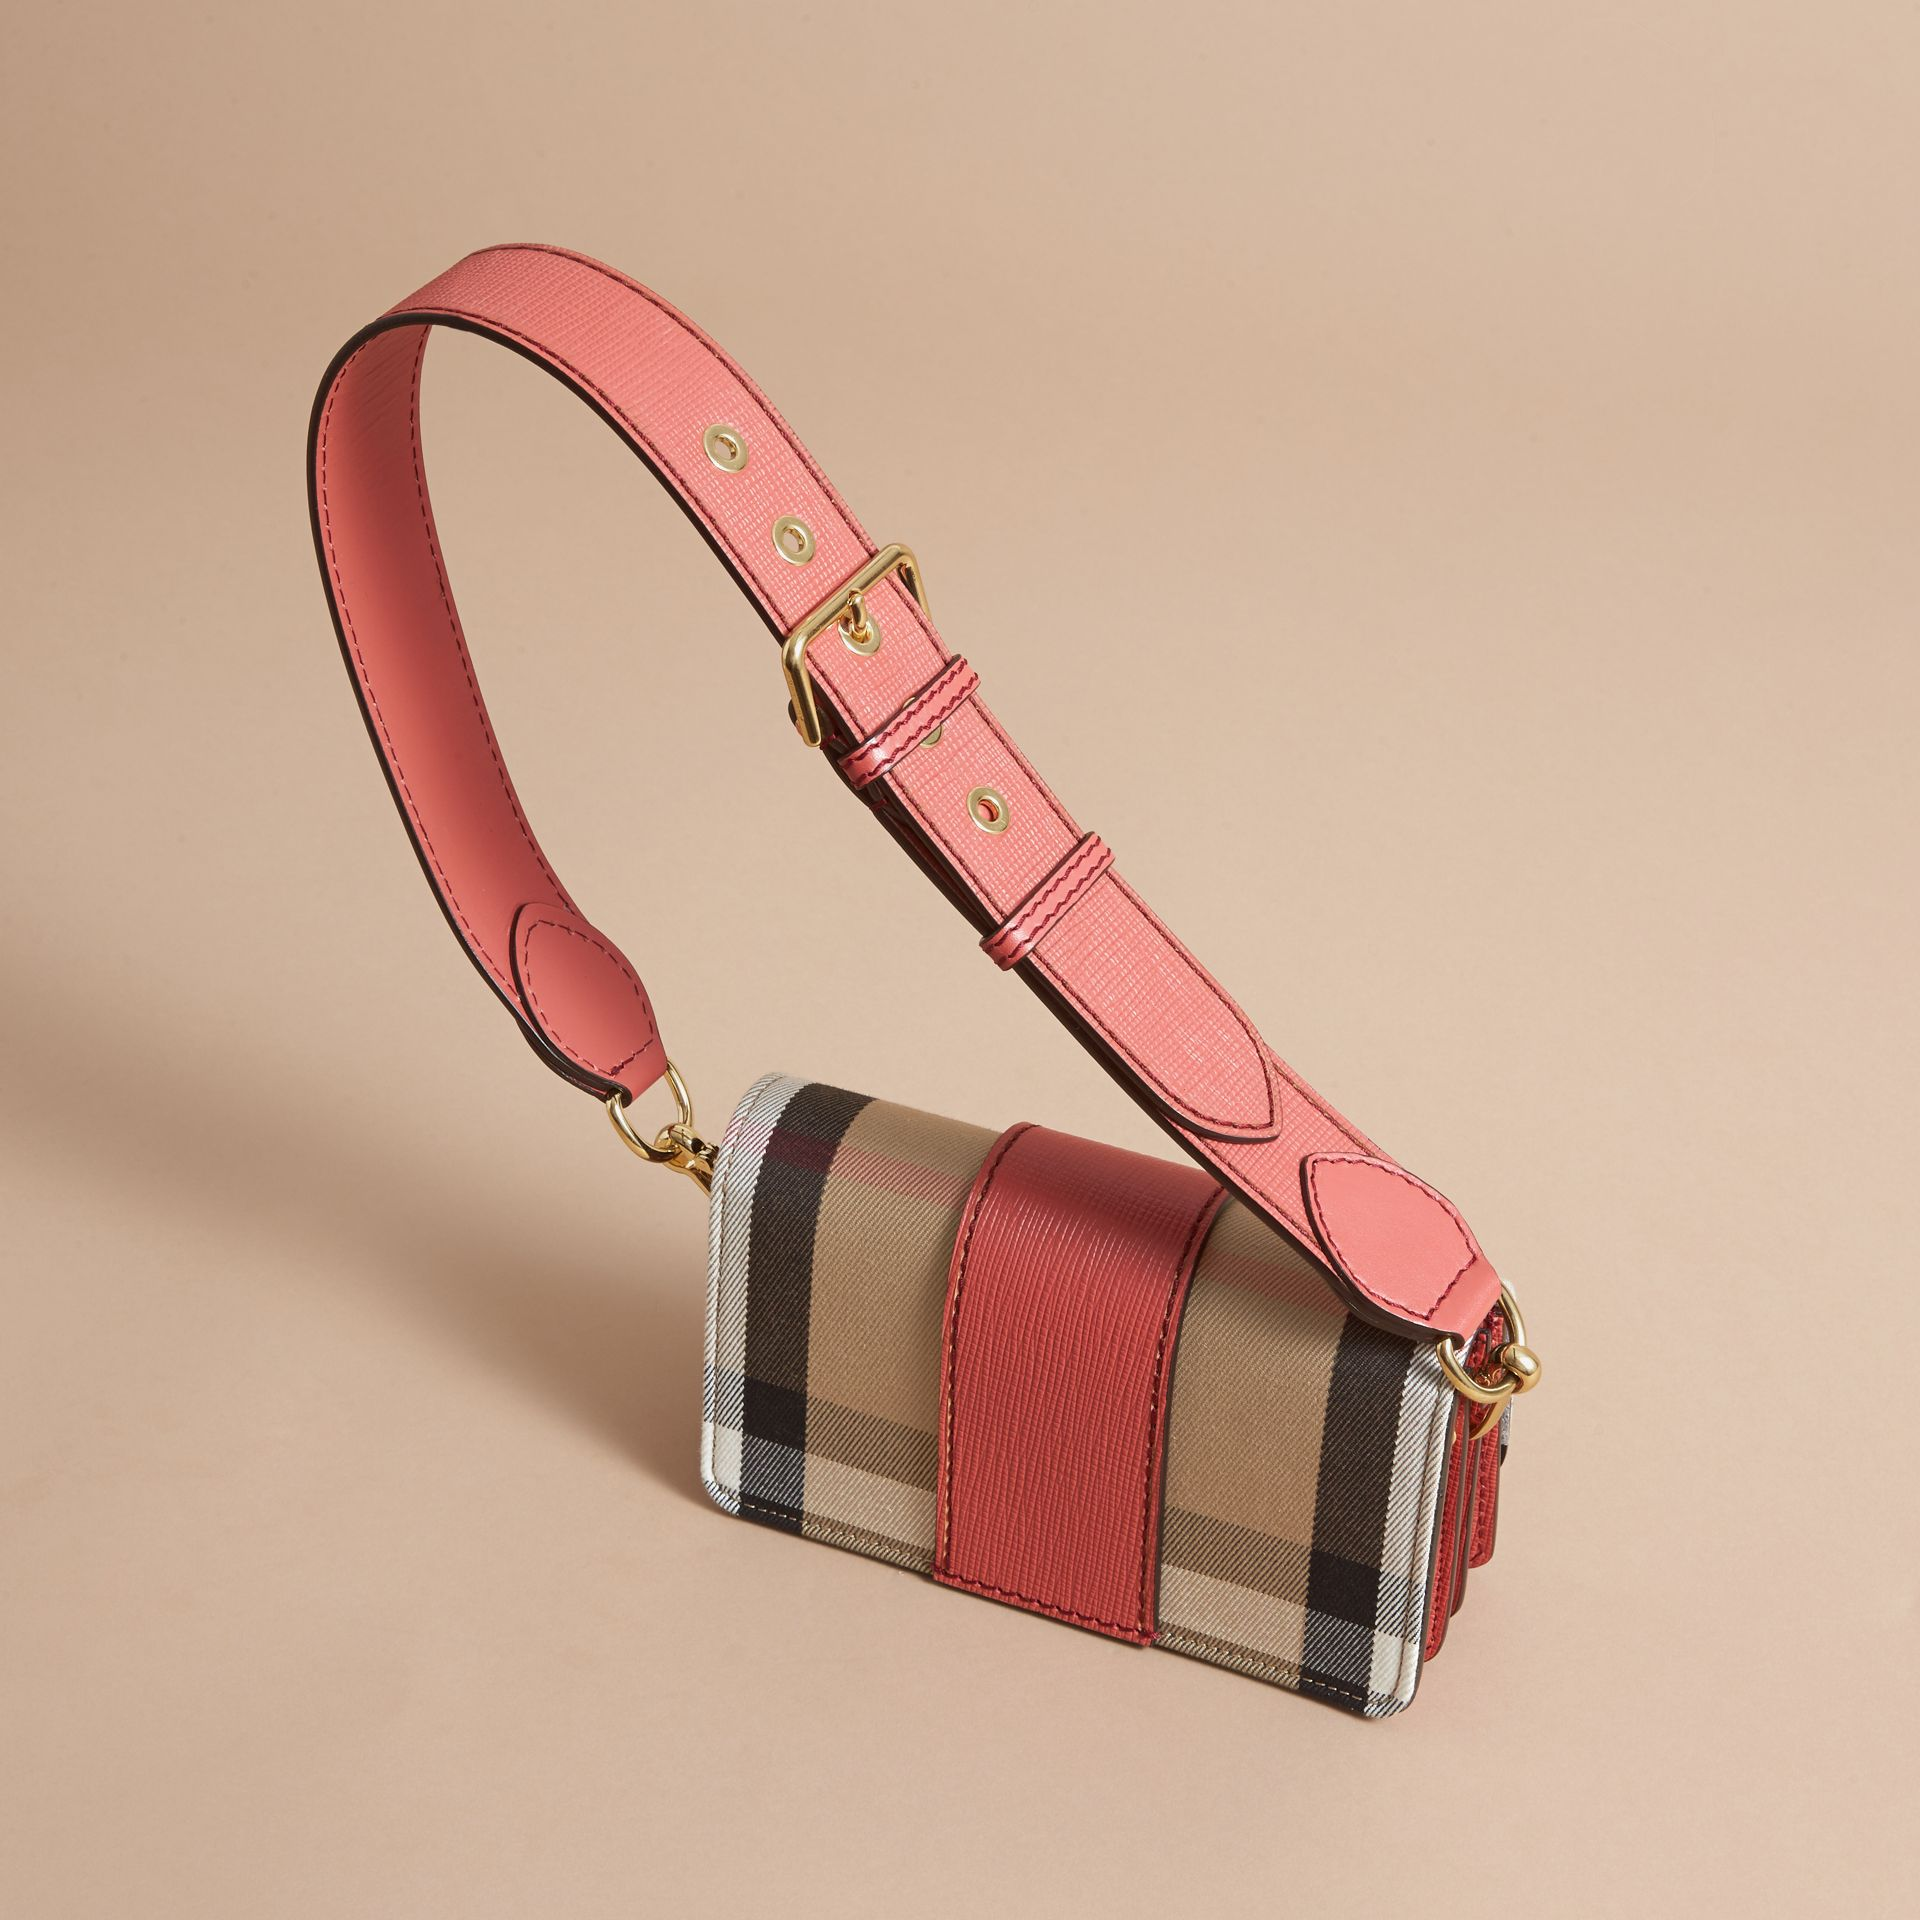 The Small Buckle Bag in House Check and Leather in Cinnamon Red - Women | Burberry - gallery image 5